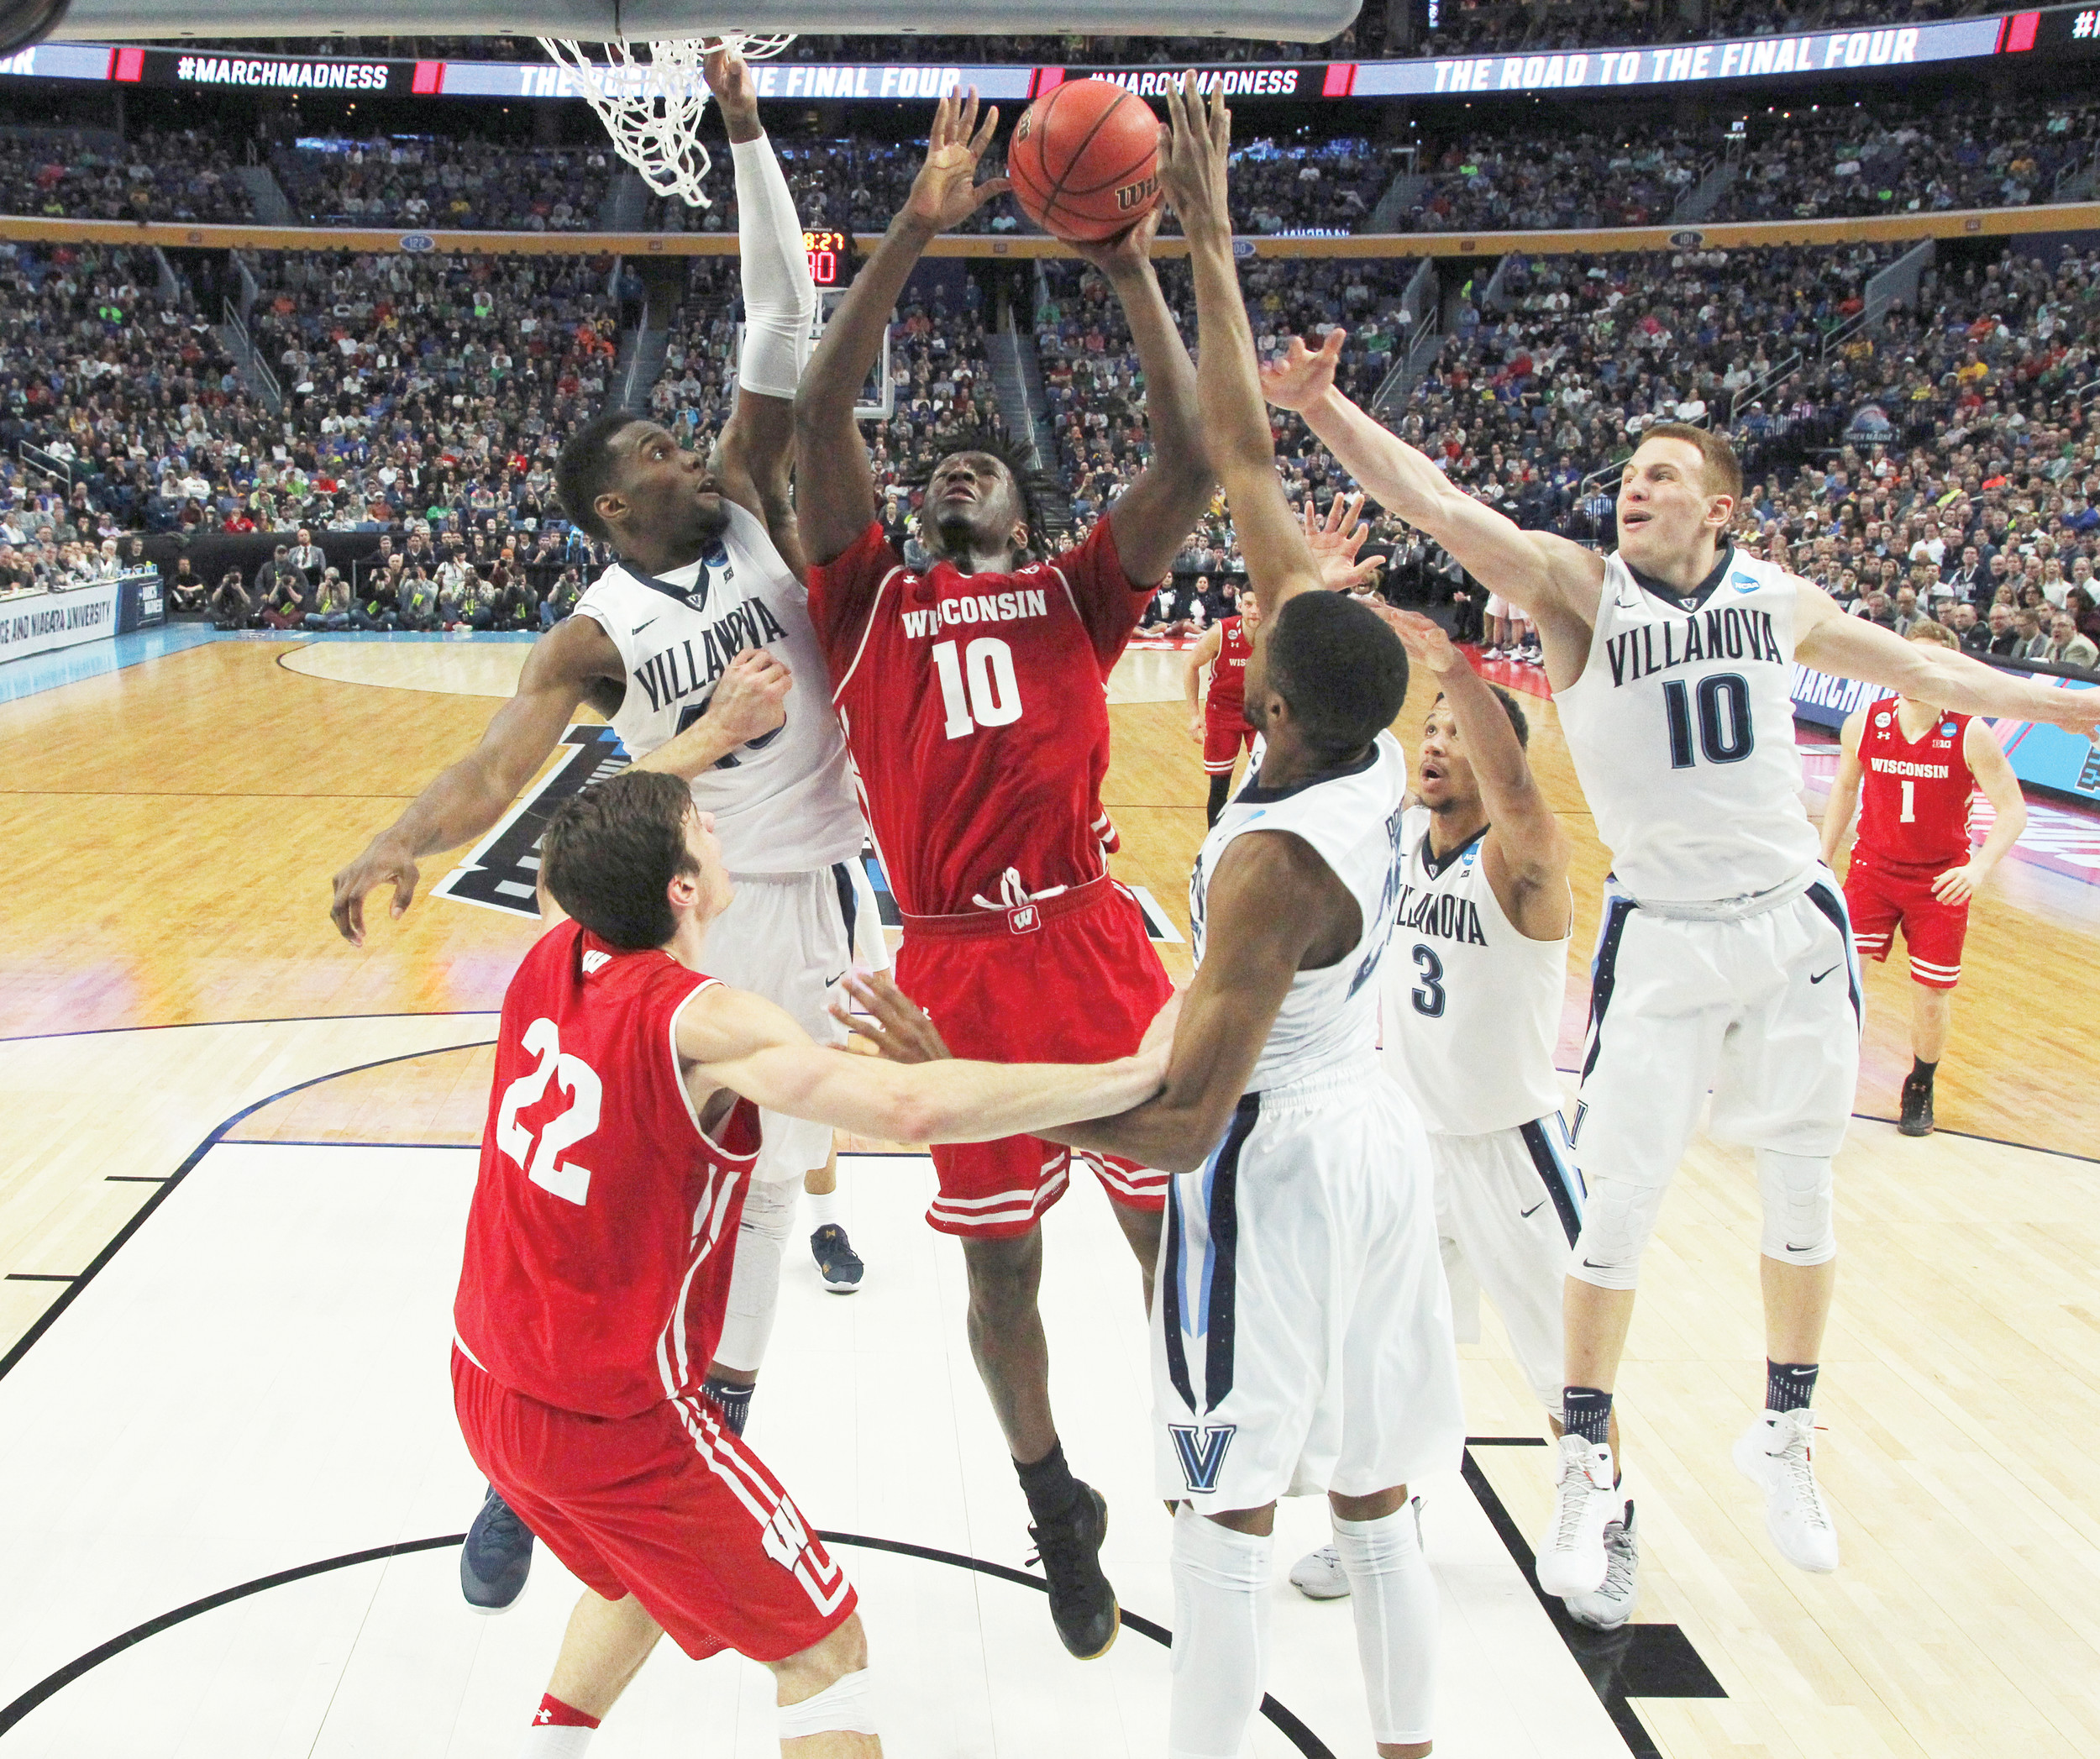 Wisconsin forward Nigel Hayes (10) goes to the basket against a slew of Villanova defenders during the Badgers' 65-62 upset victory in the second round of the men's NCAA tournament on Saturday in Buffalo, New York.